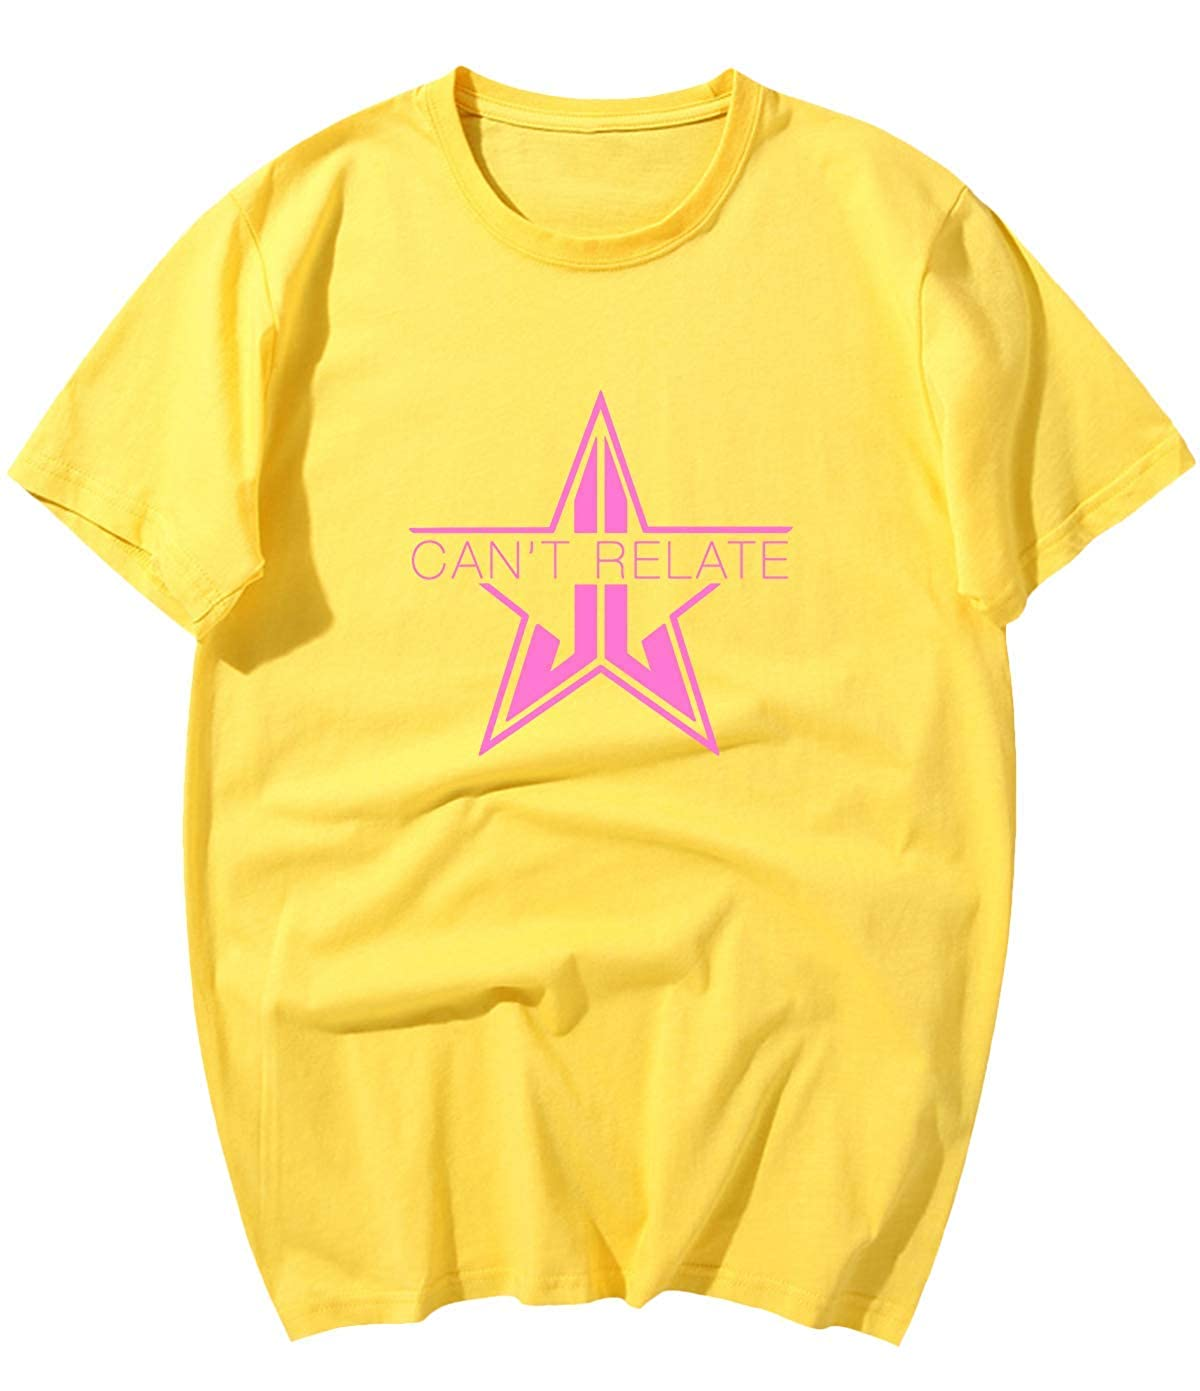 tianlihong1 Jeffree-Star T Shirt for Man Womens